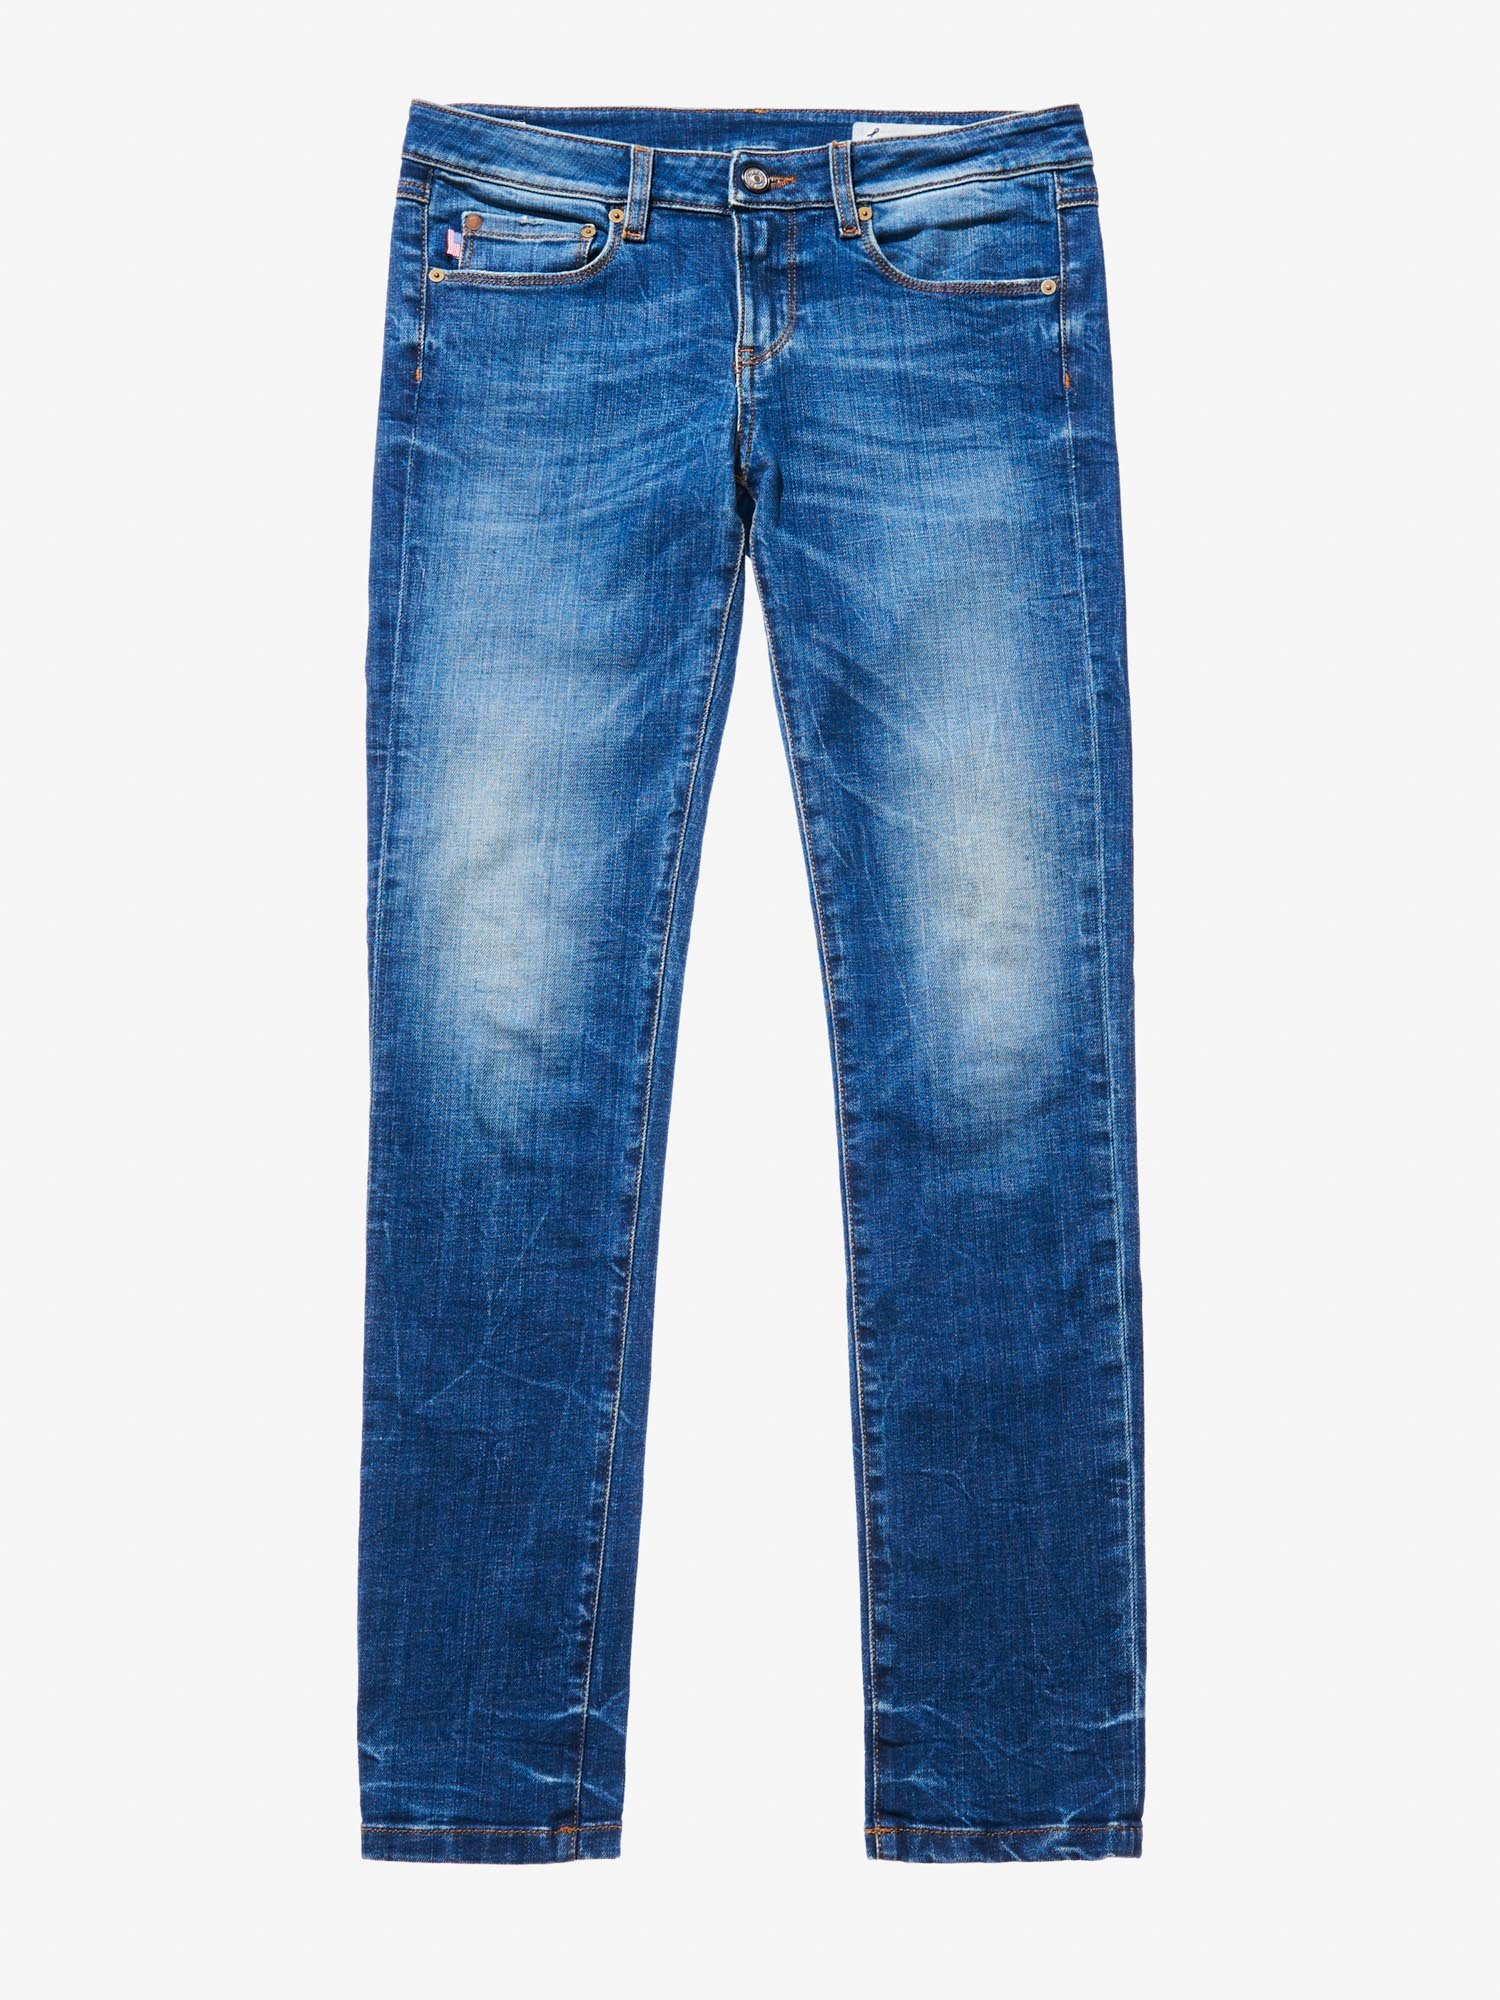 Blauer - BOOT CUT DENIM - Denim Washing - Blauer